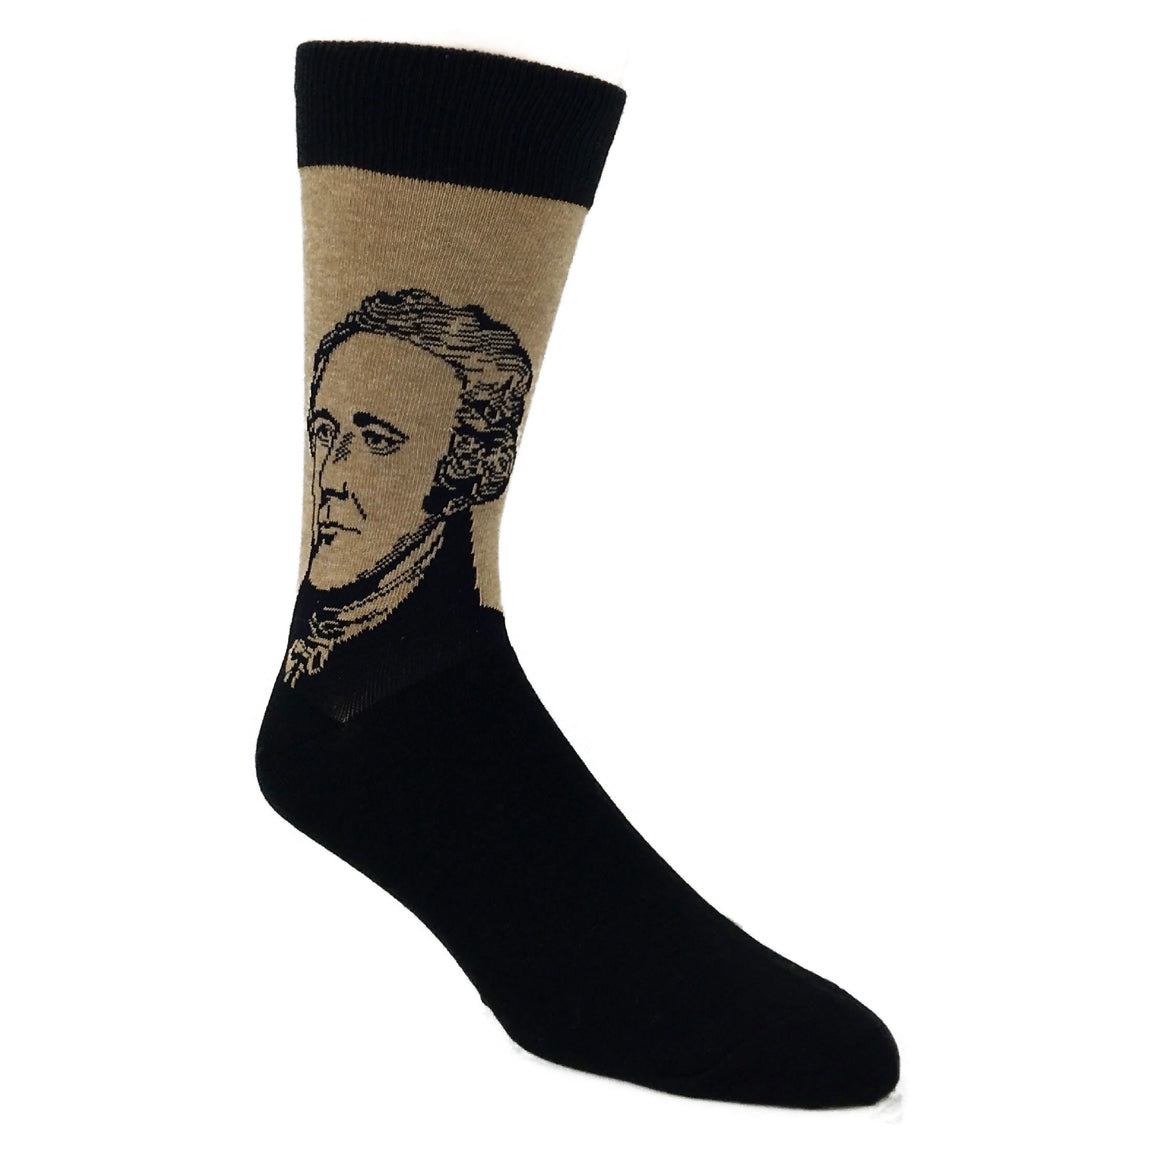 Alexander Hamilton Socks in Brown by SockSmith - The Sock Spot